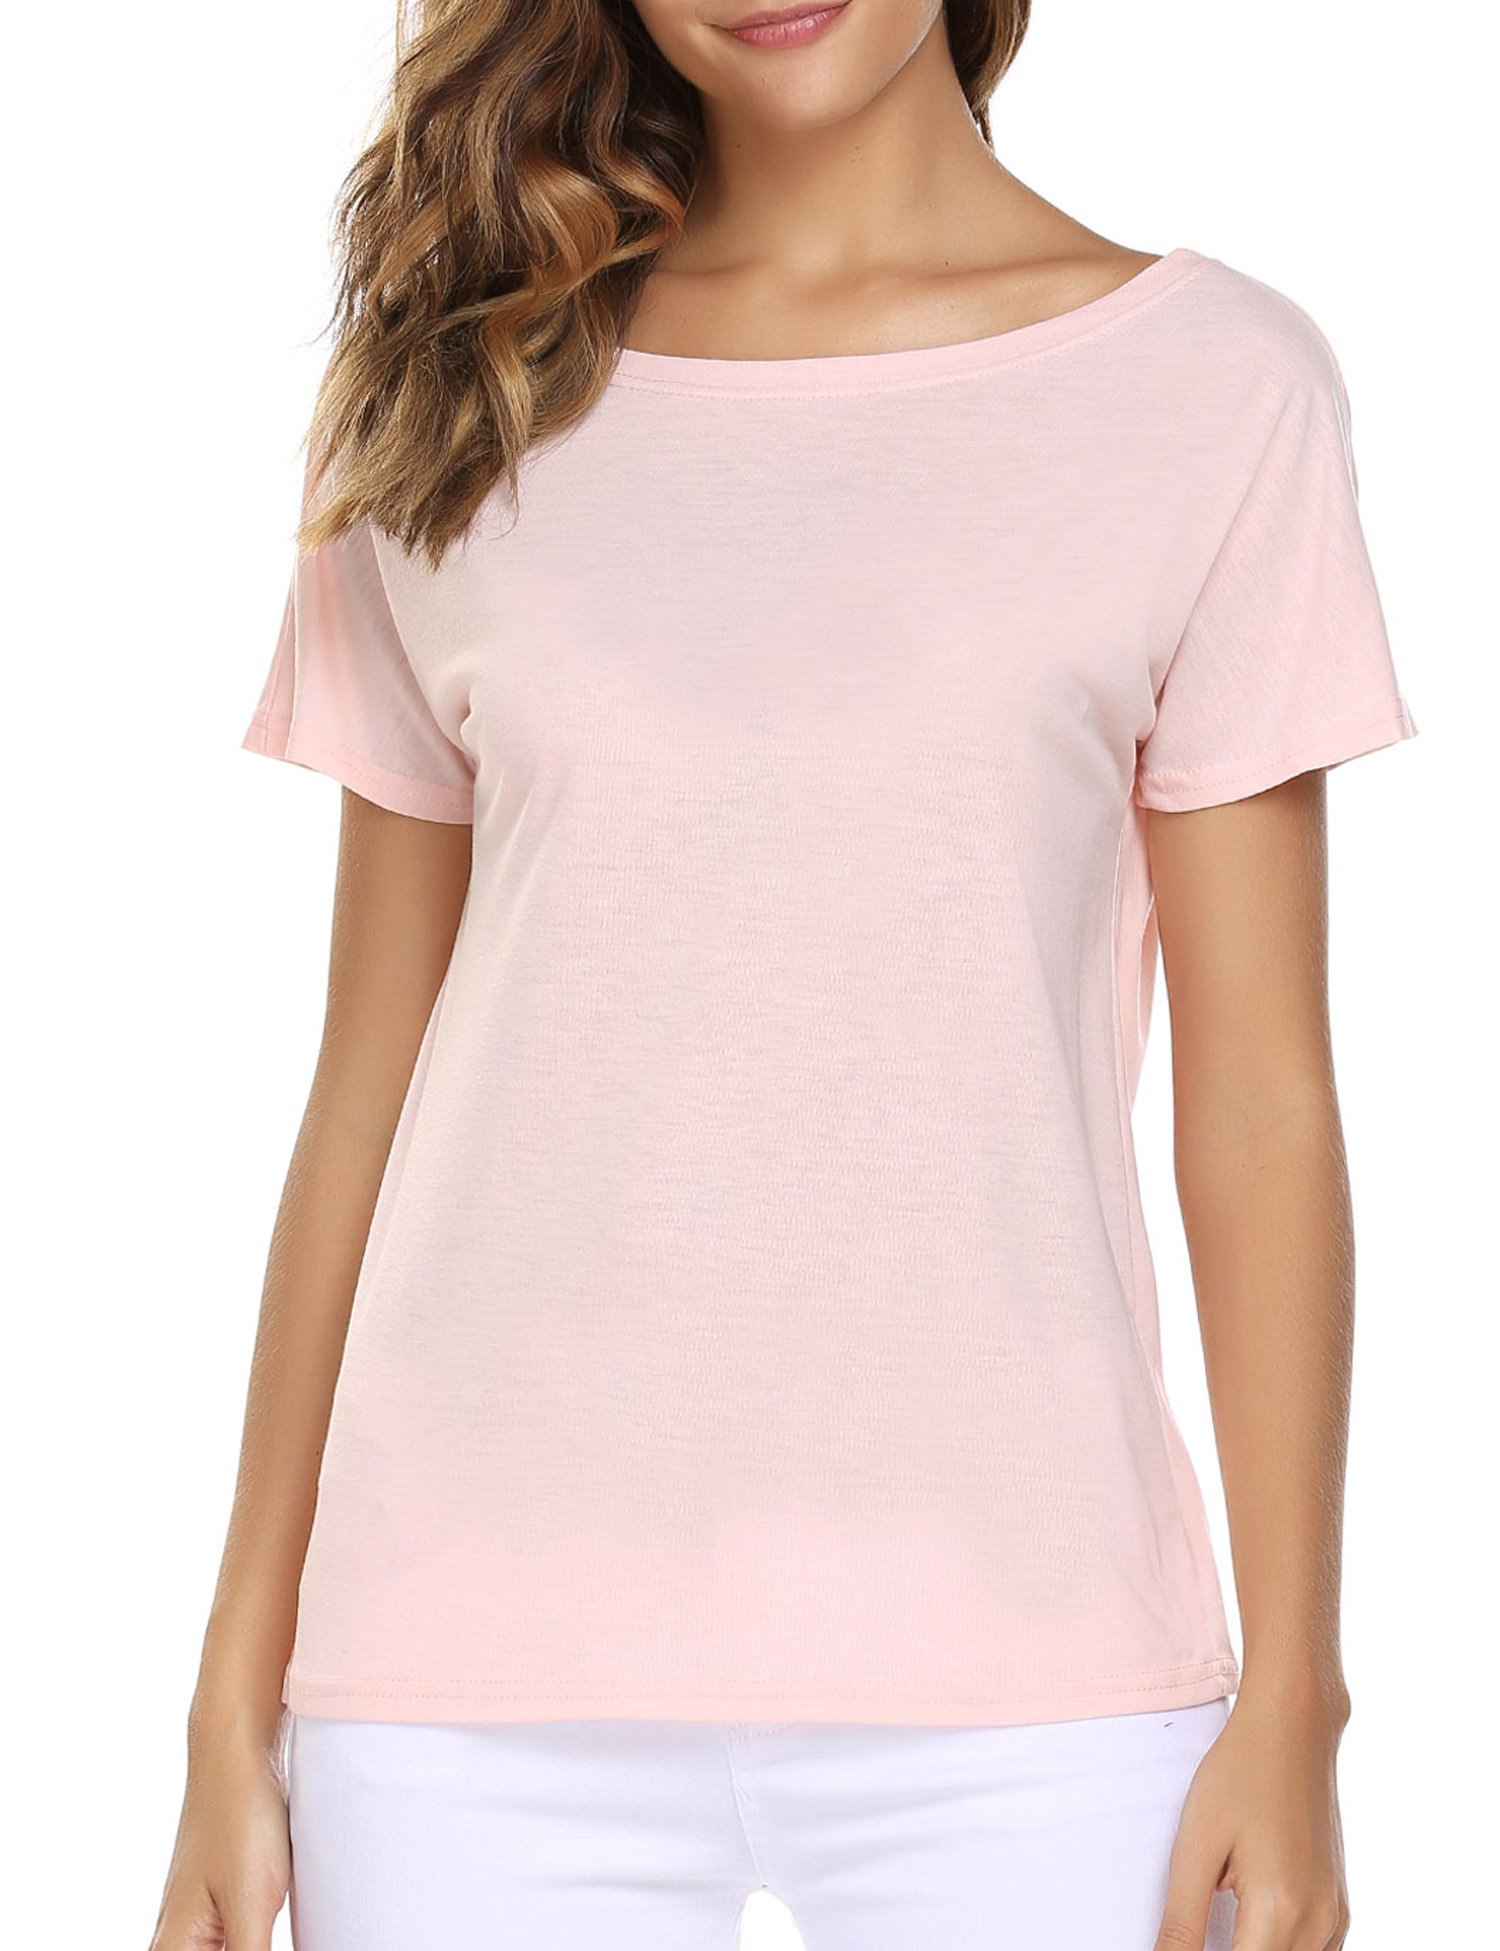 Easther Women's Short Sleeve T-Shirt Criss Cross Casual Round Neck Girls Top Tee Shirts(Pink,Large)